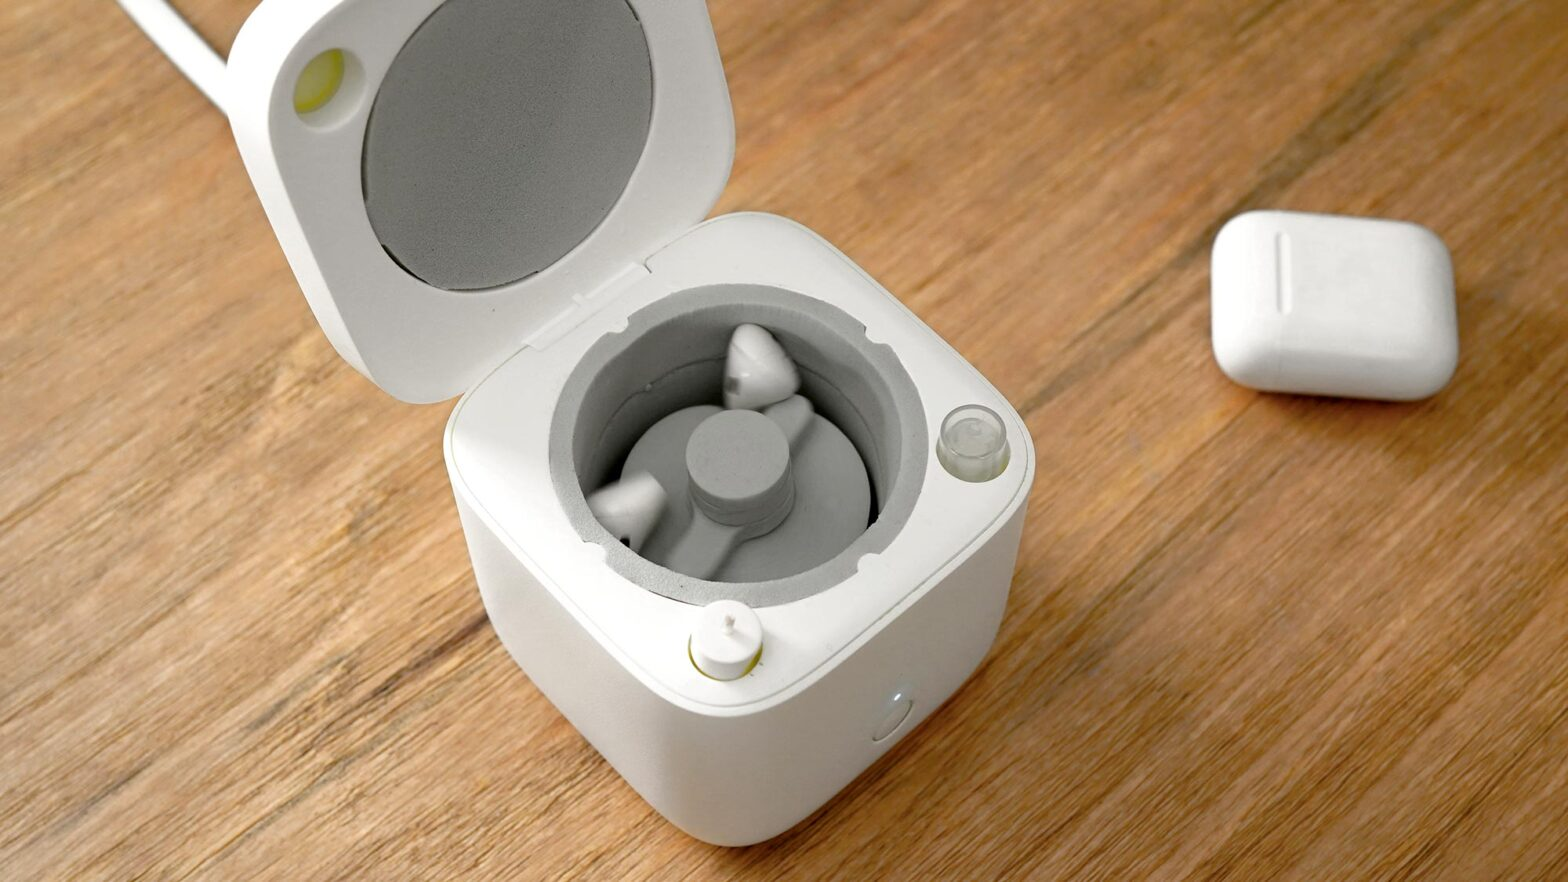 Cardlax Automatic Earbuds Washer Kickstarter